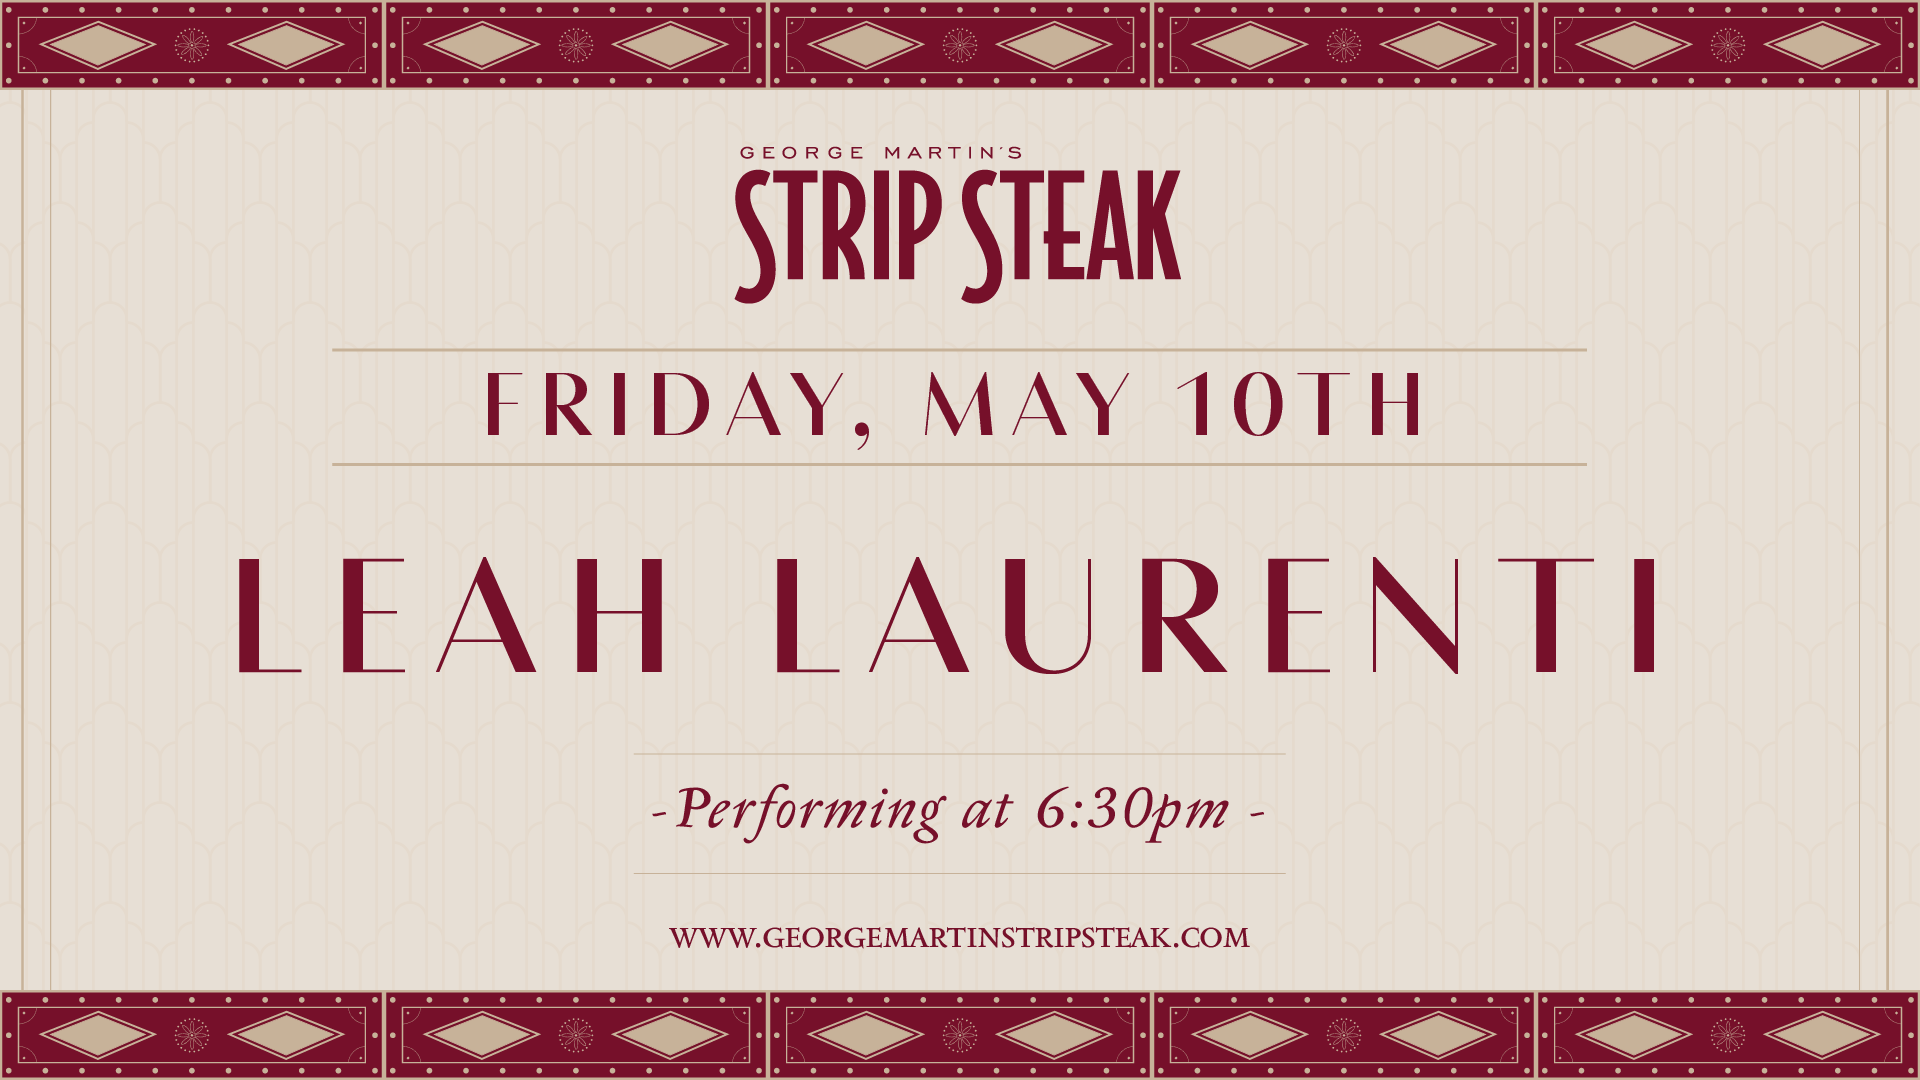 Flyer for live music with Leah Laurenti at 6:30pm.